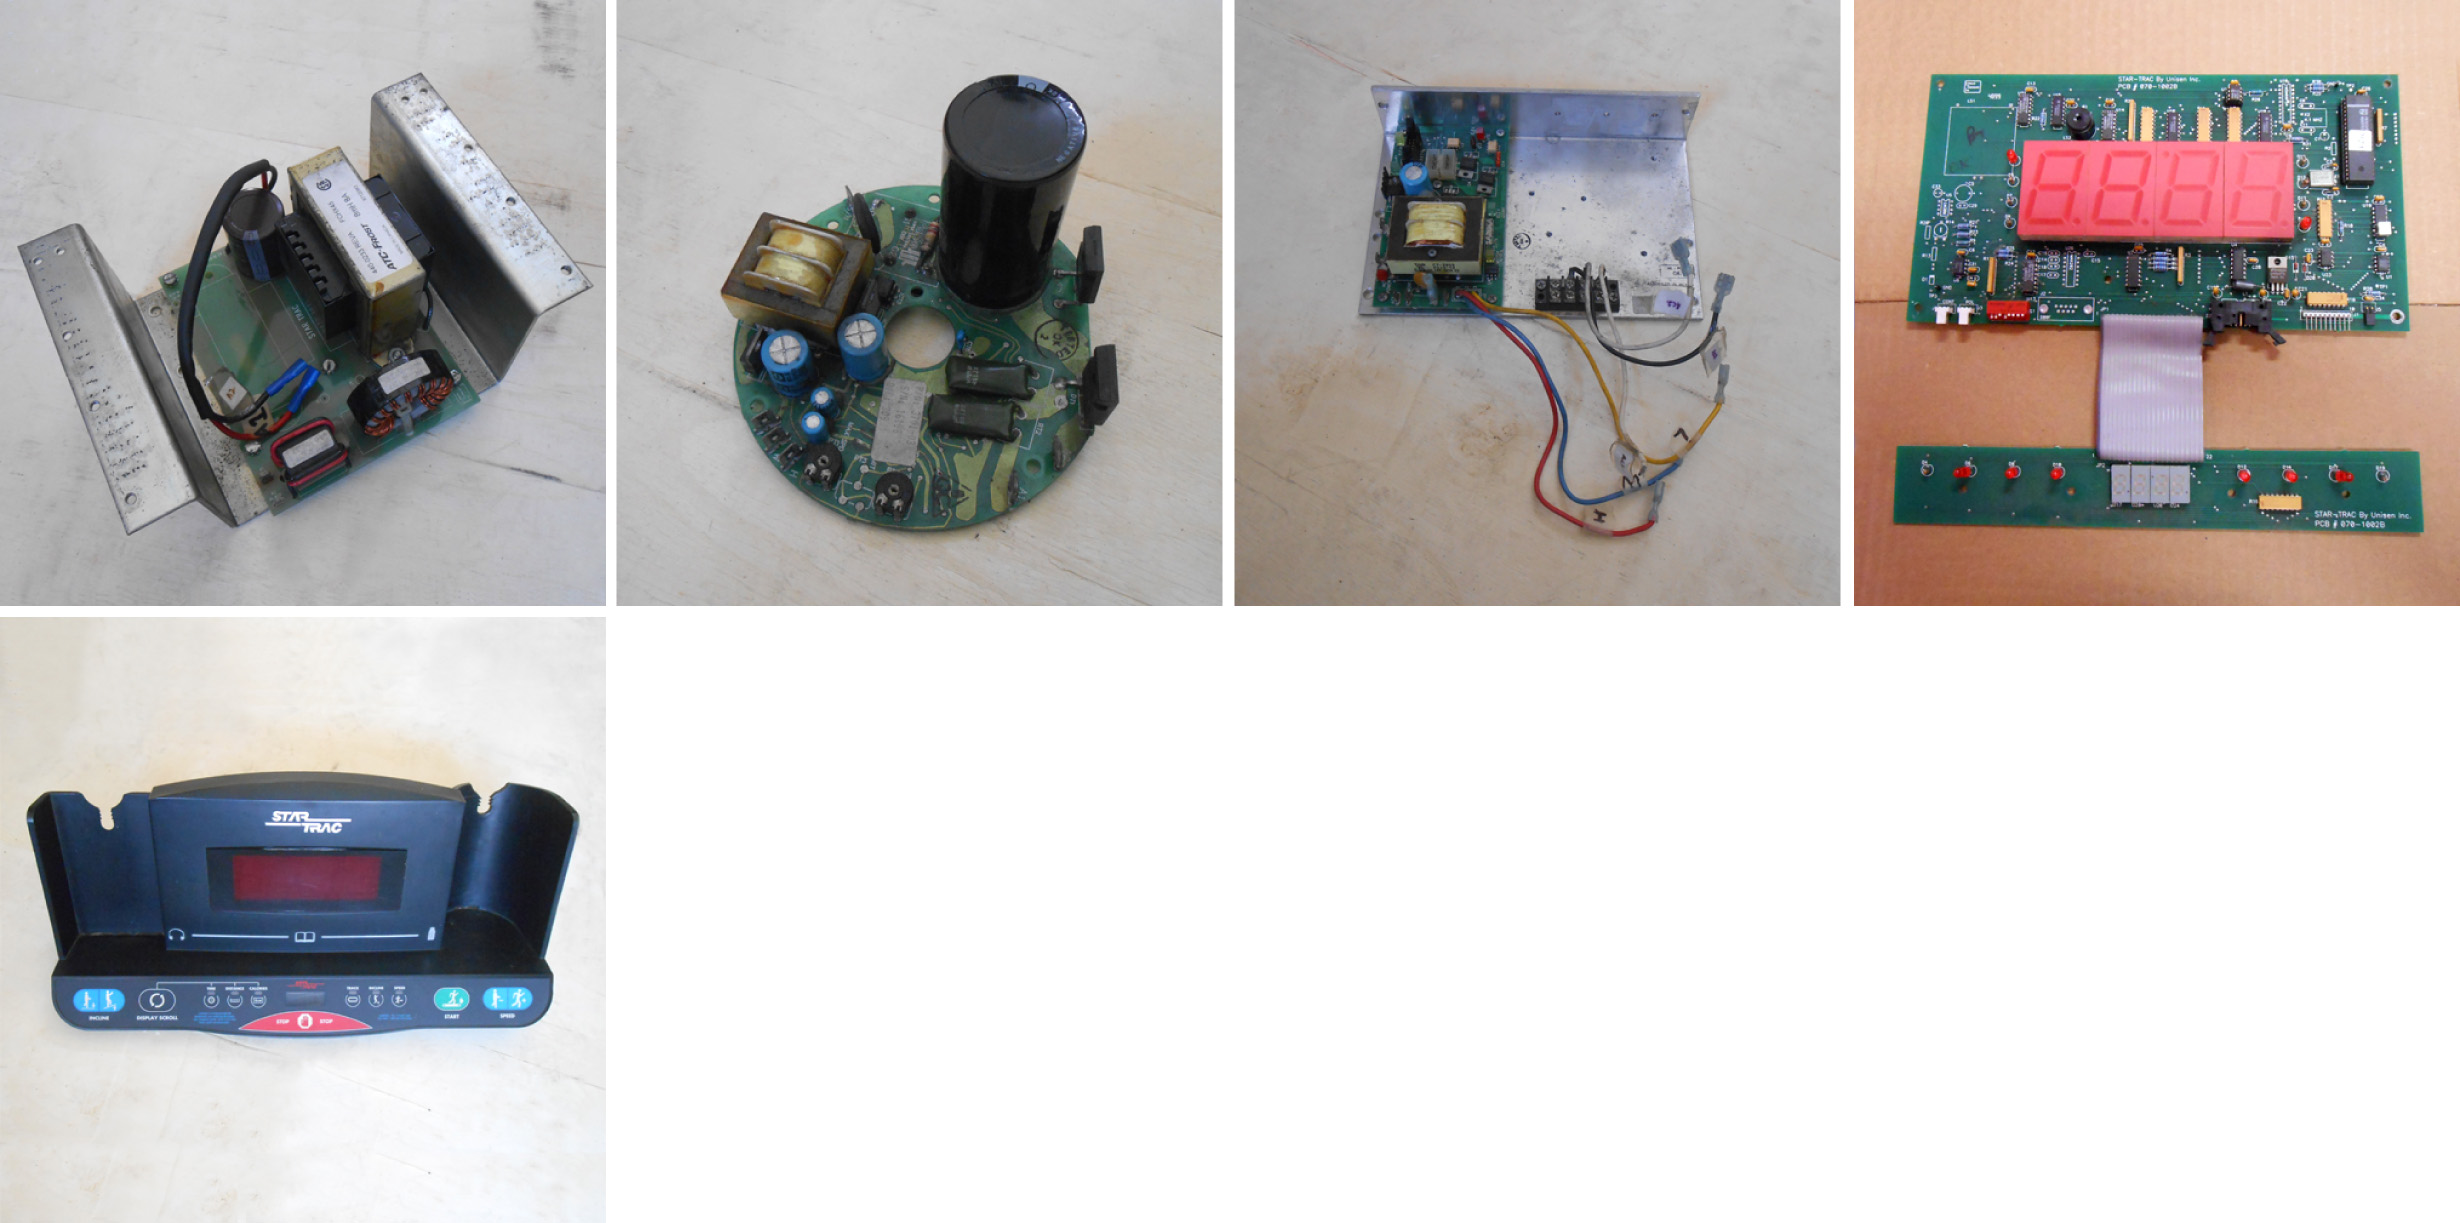 Used Spare Part For StarTrac Tr3900 Treadmill _800px x 1000px